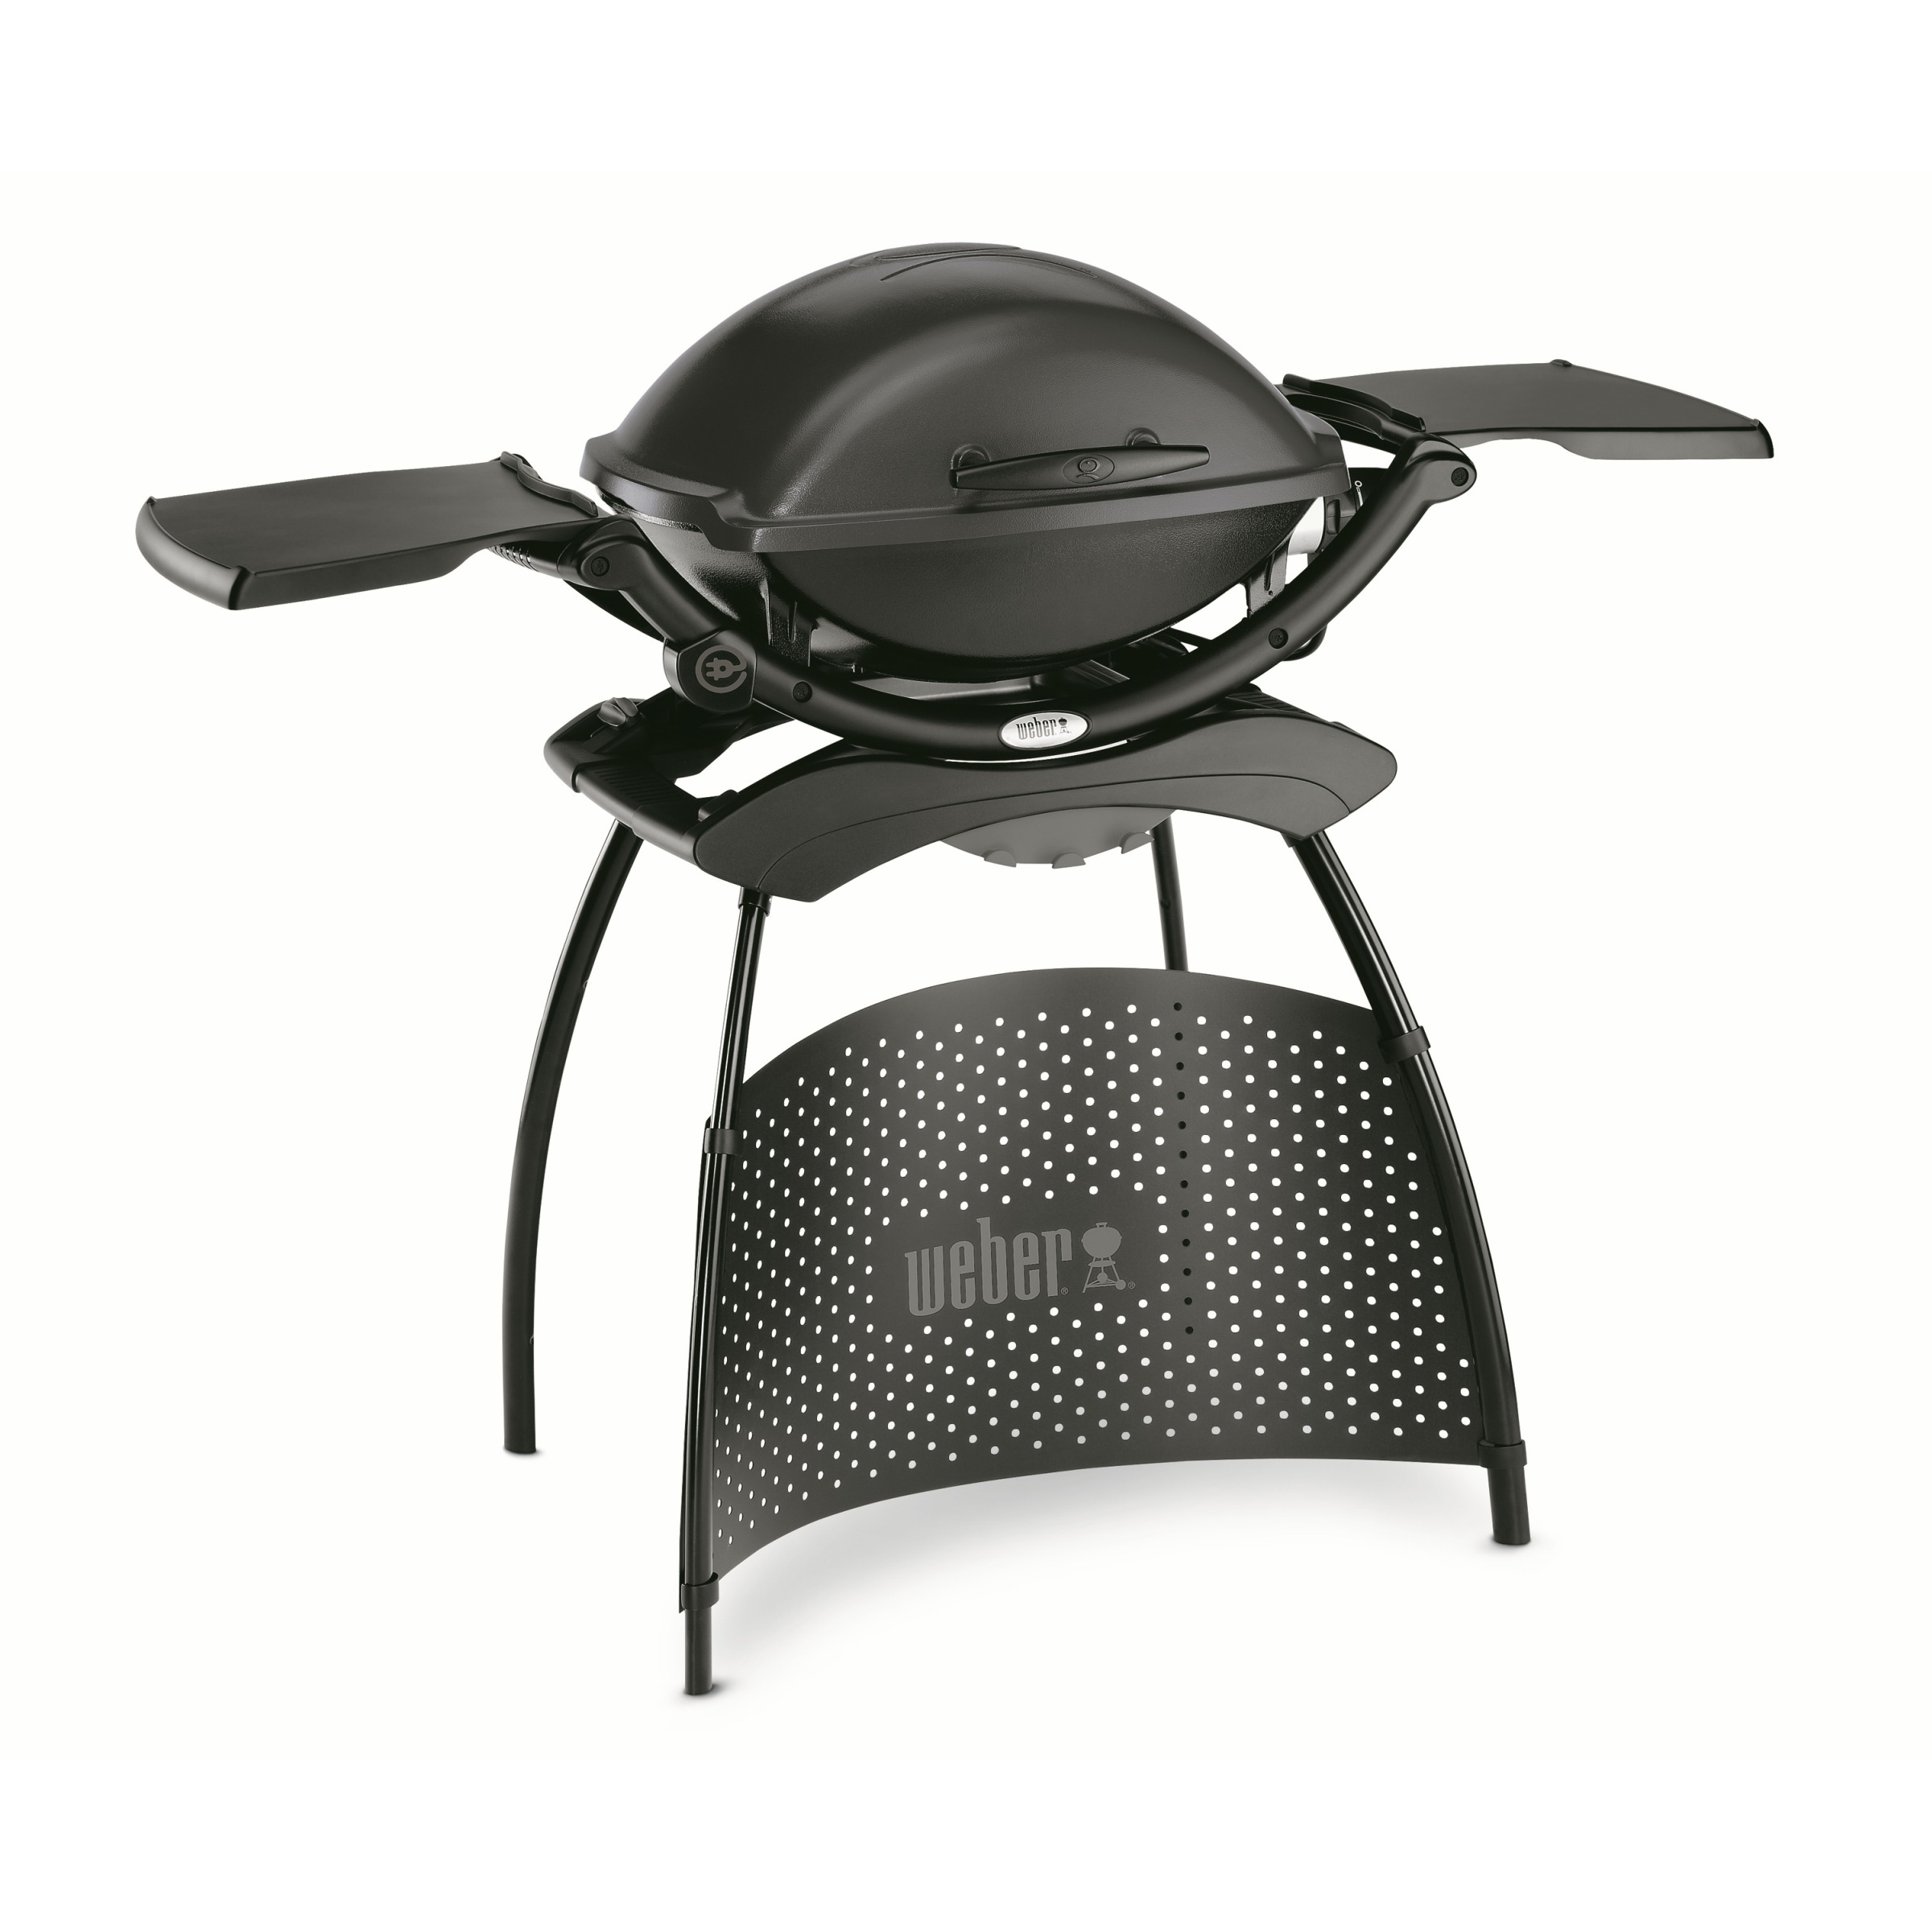 Weber barbecue Q2400 Stand